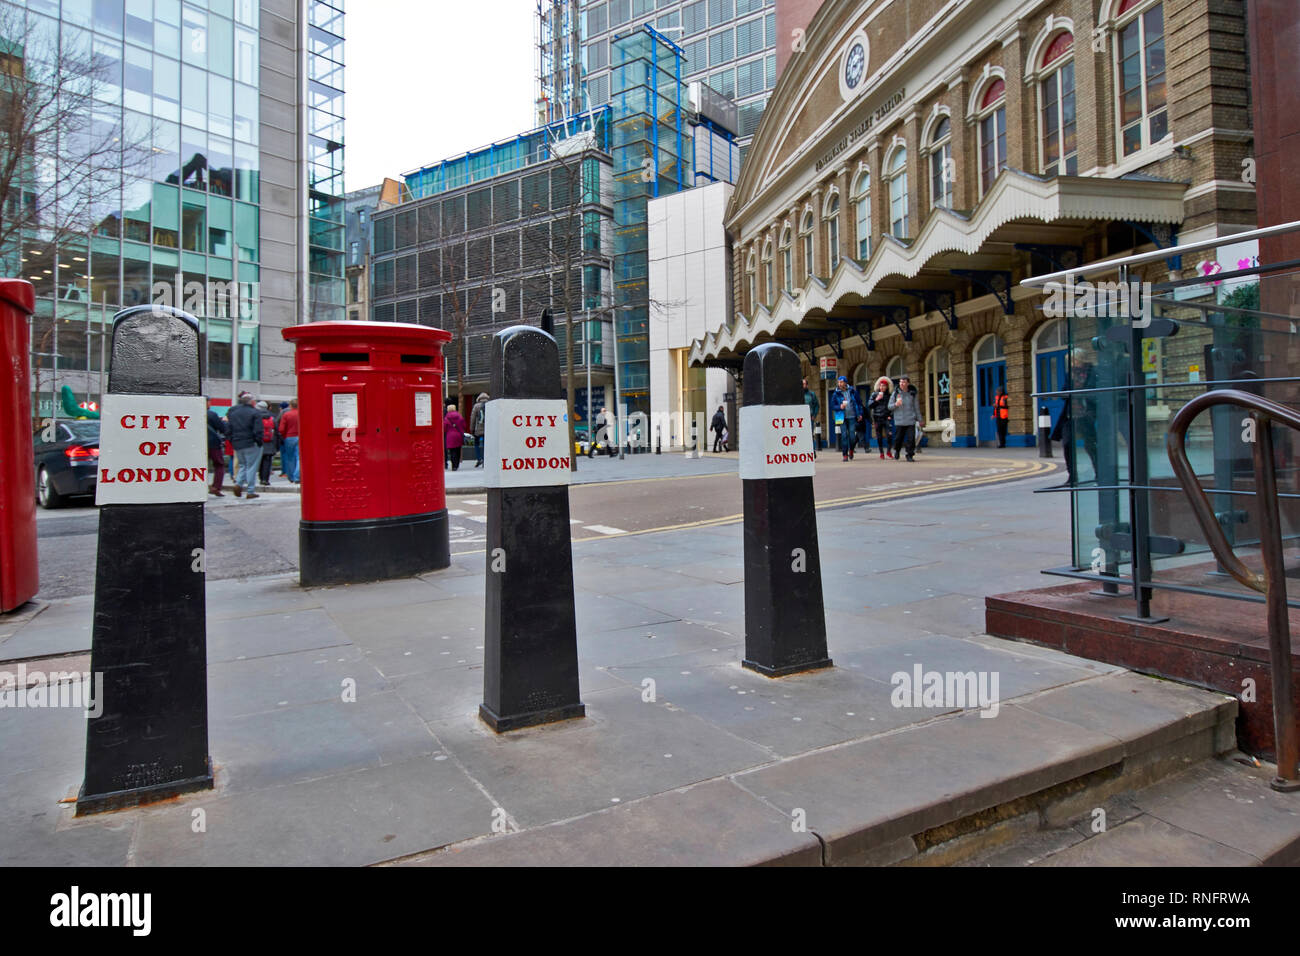 LONDON CITY OF LONDON BOLLARDS IN FRONT OF FENCHURCH STREET STATION - Stock Image